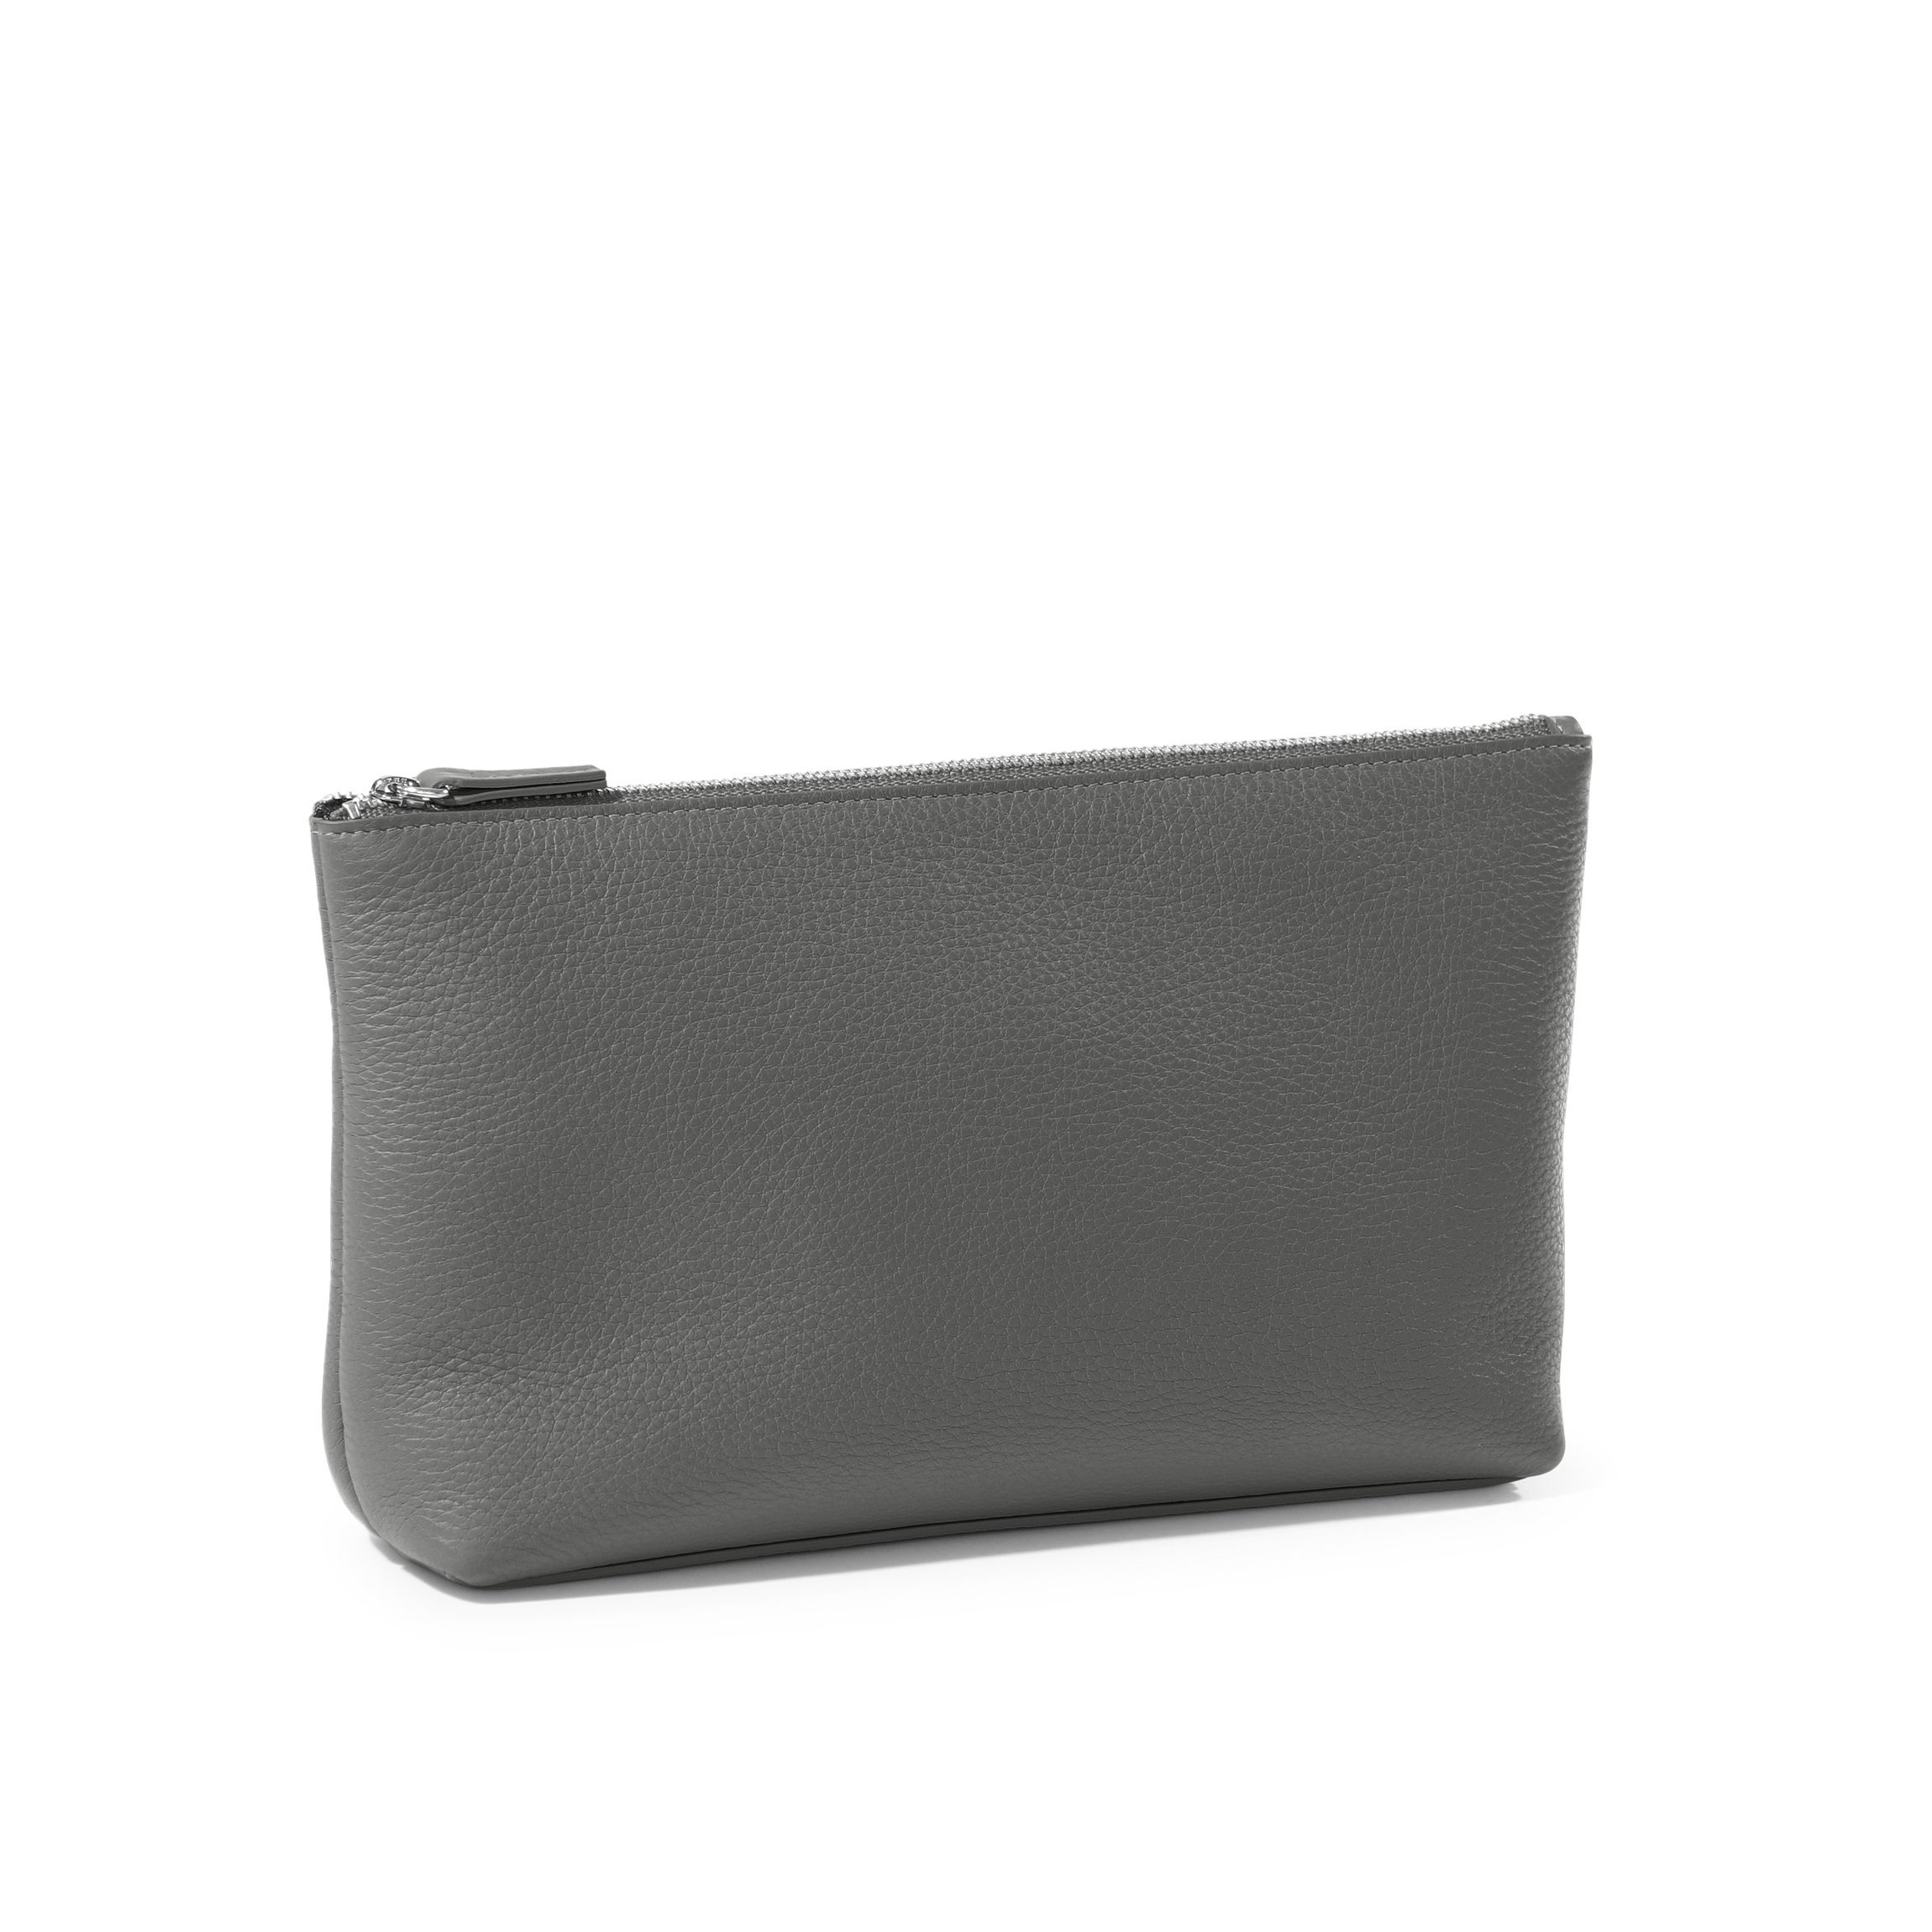 Medium Accessories Pouch - Full Grain Leather Leather - Charcoal (gray)